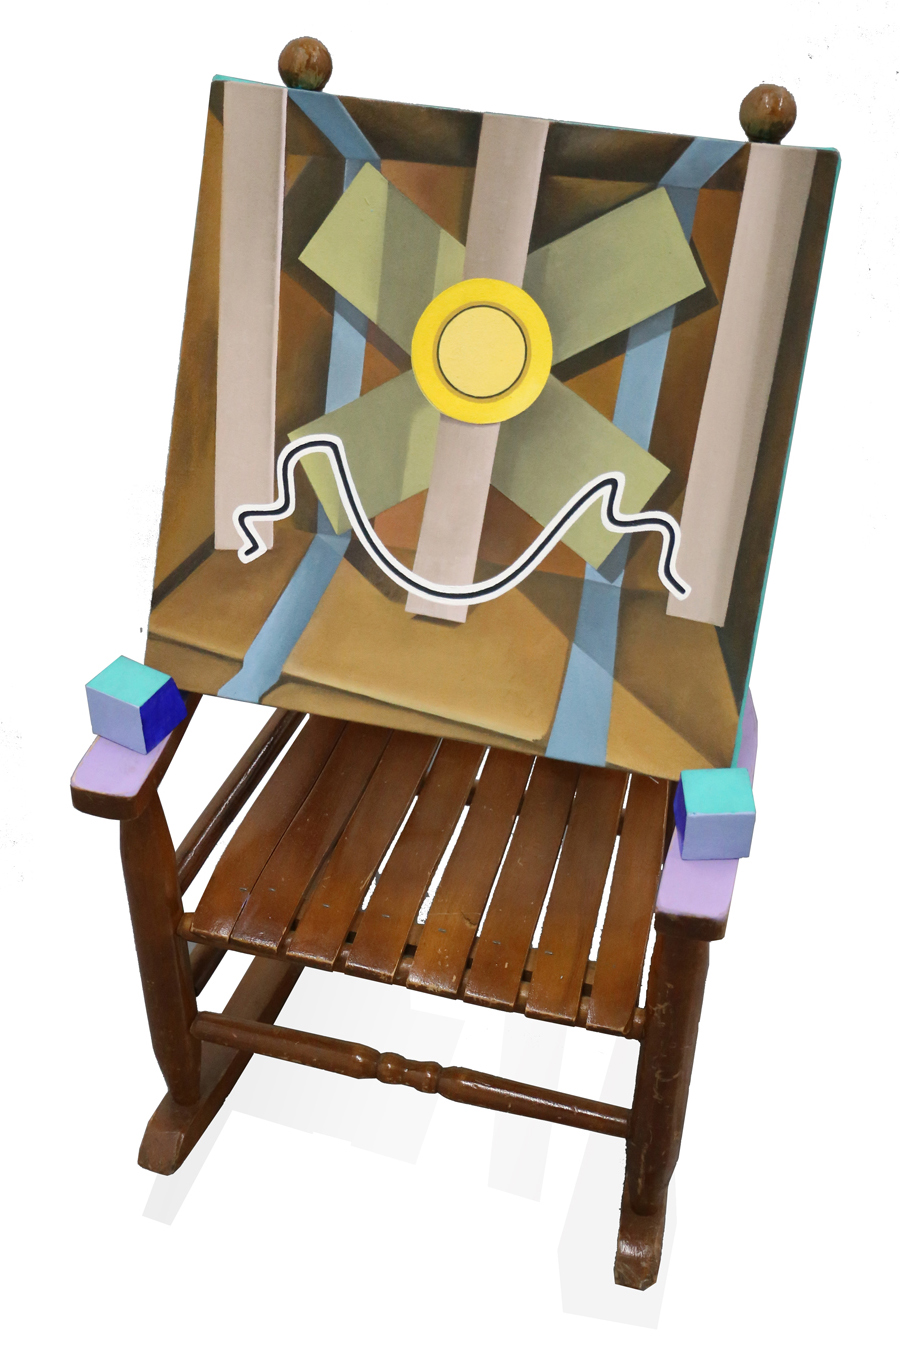 PaintingOnChairFLOATINGsmall.jpg